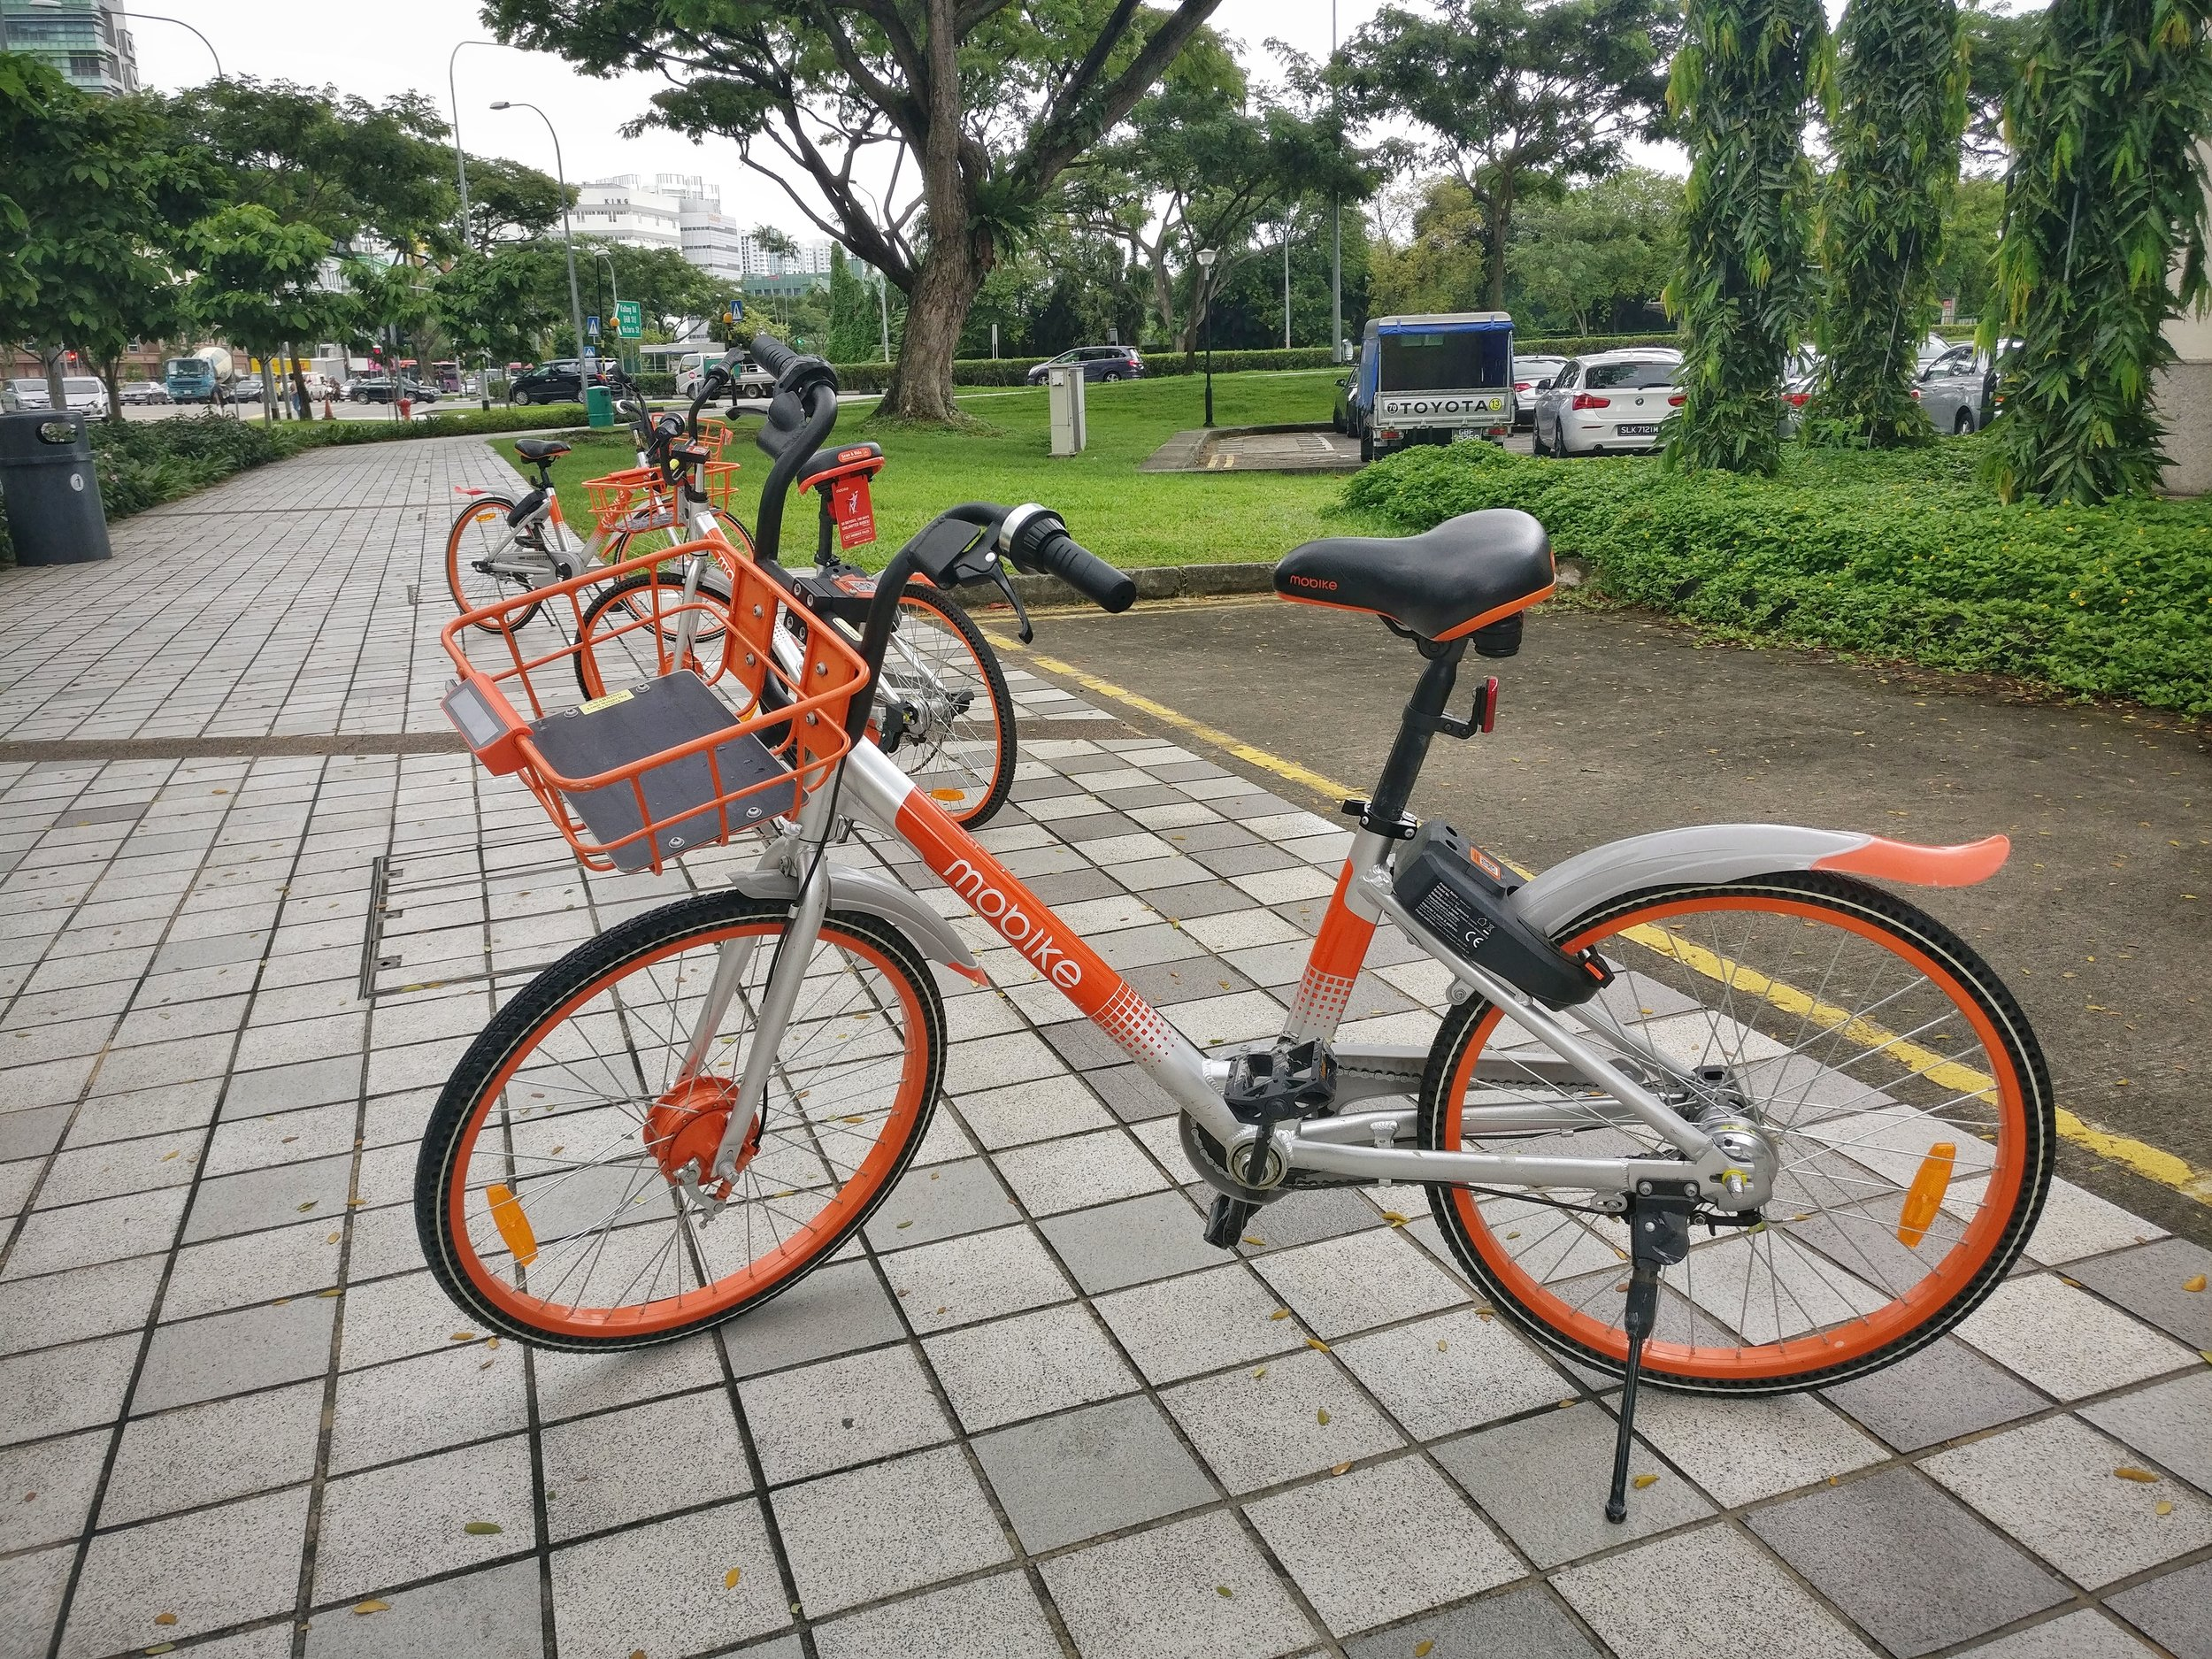 A shared bike